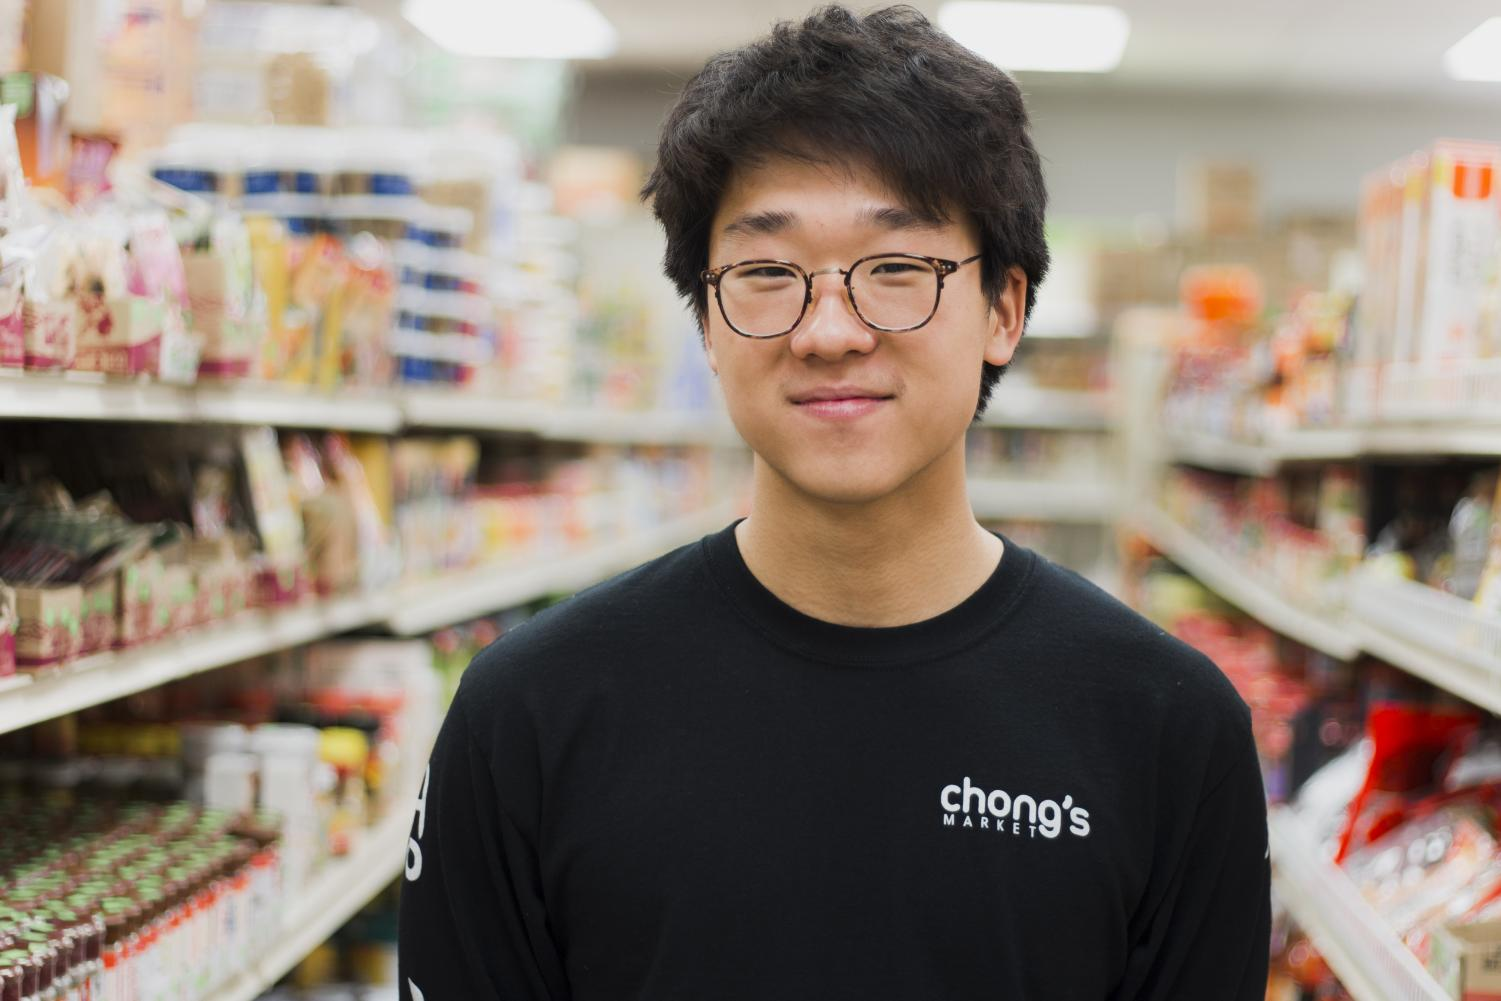 Chris Kim '20 created merchandise for his family's grocery story, Chong's Market.